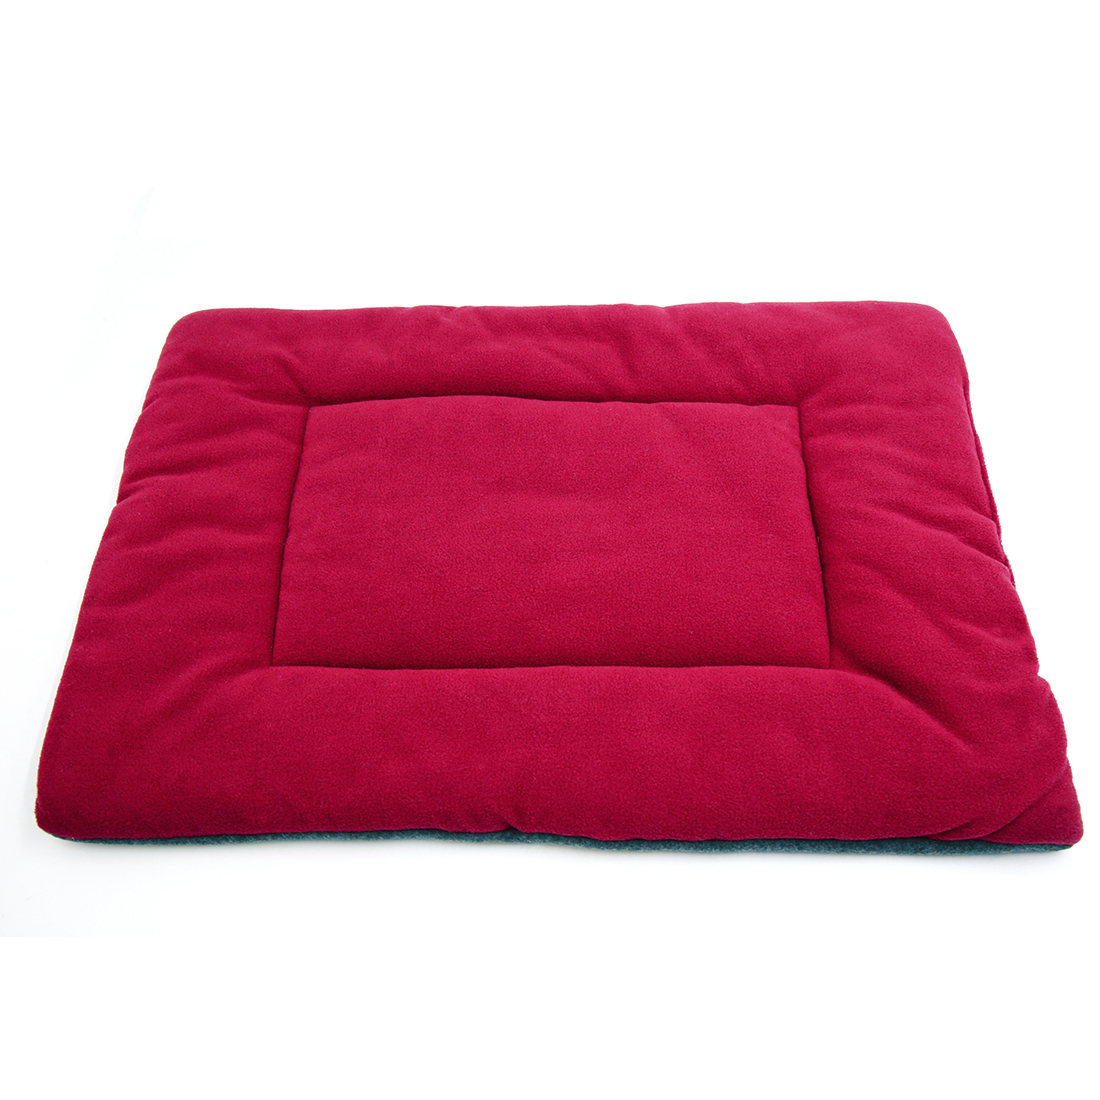 Fleece Reversible Mat Cushion Pad Bed for Dog Cat Puppy Pet Burgundy S